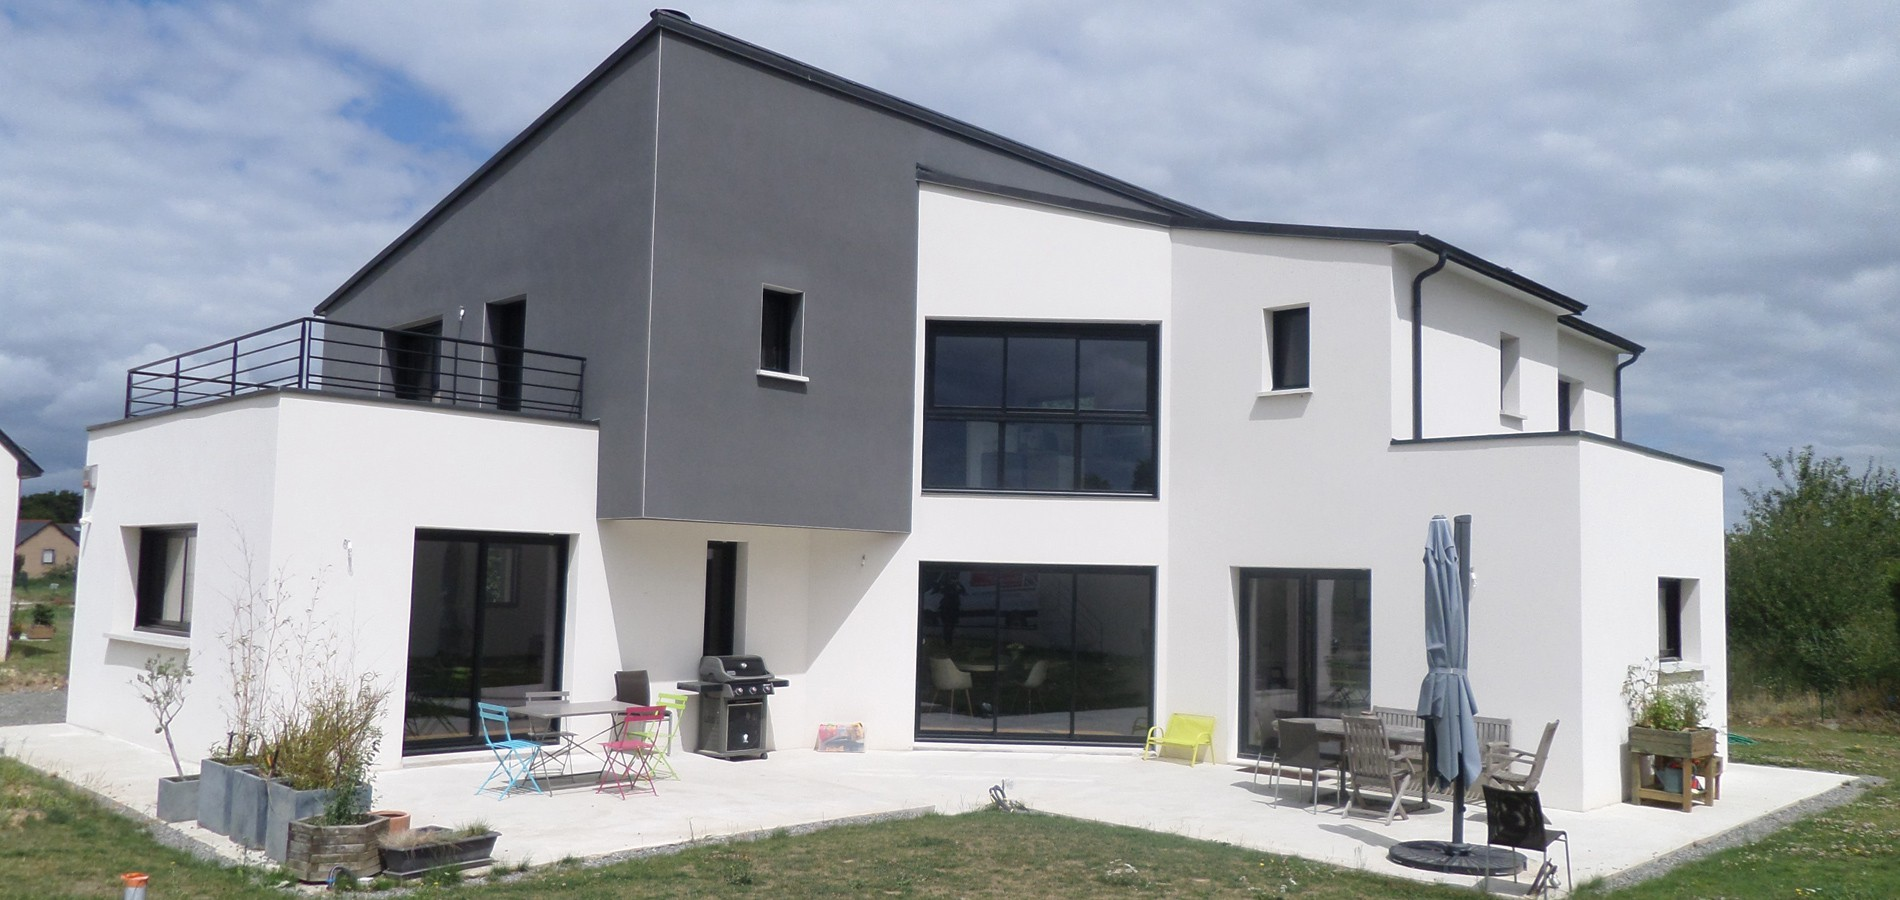 Jouanny architecte Maison contemporaine_1